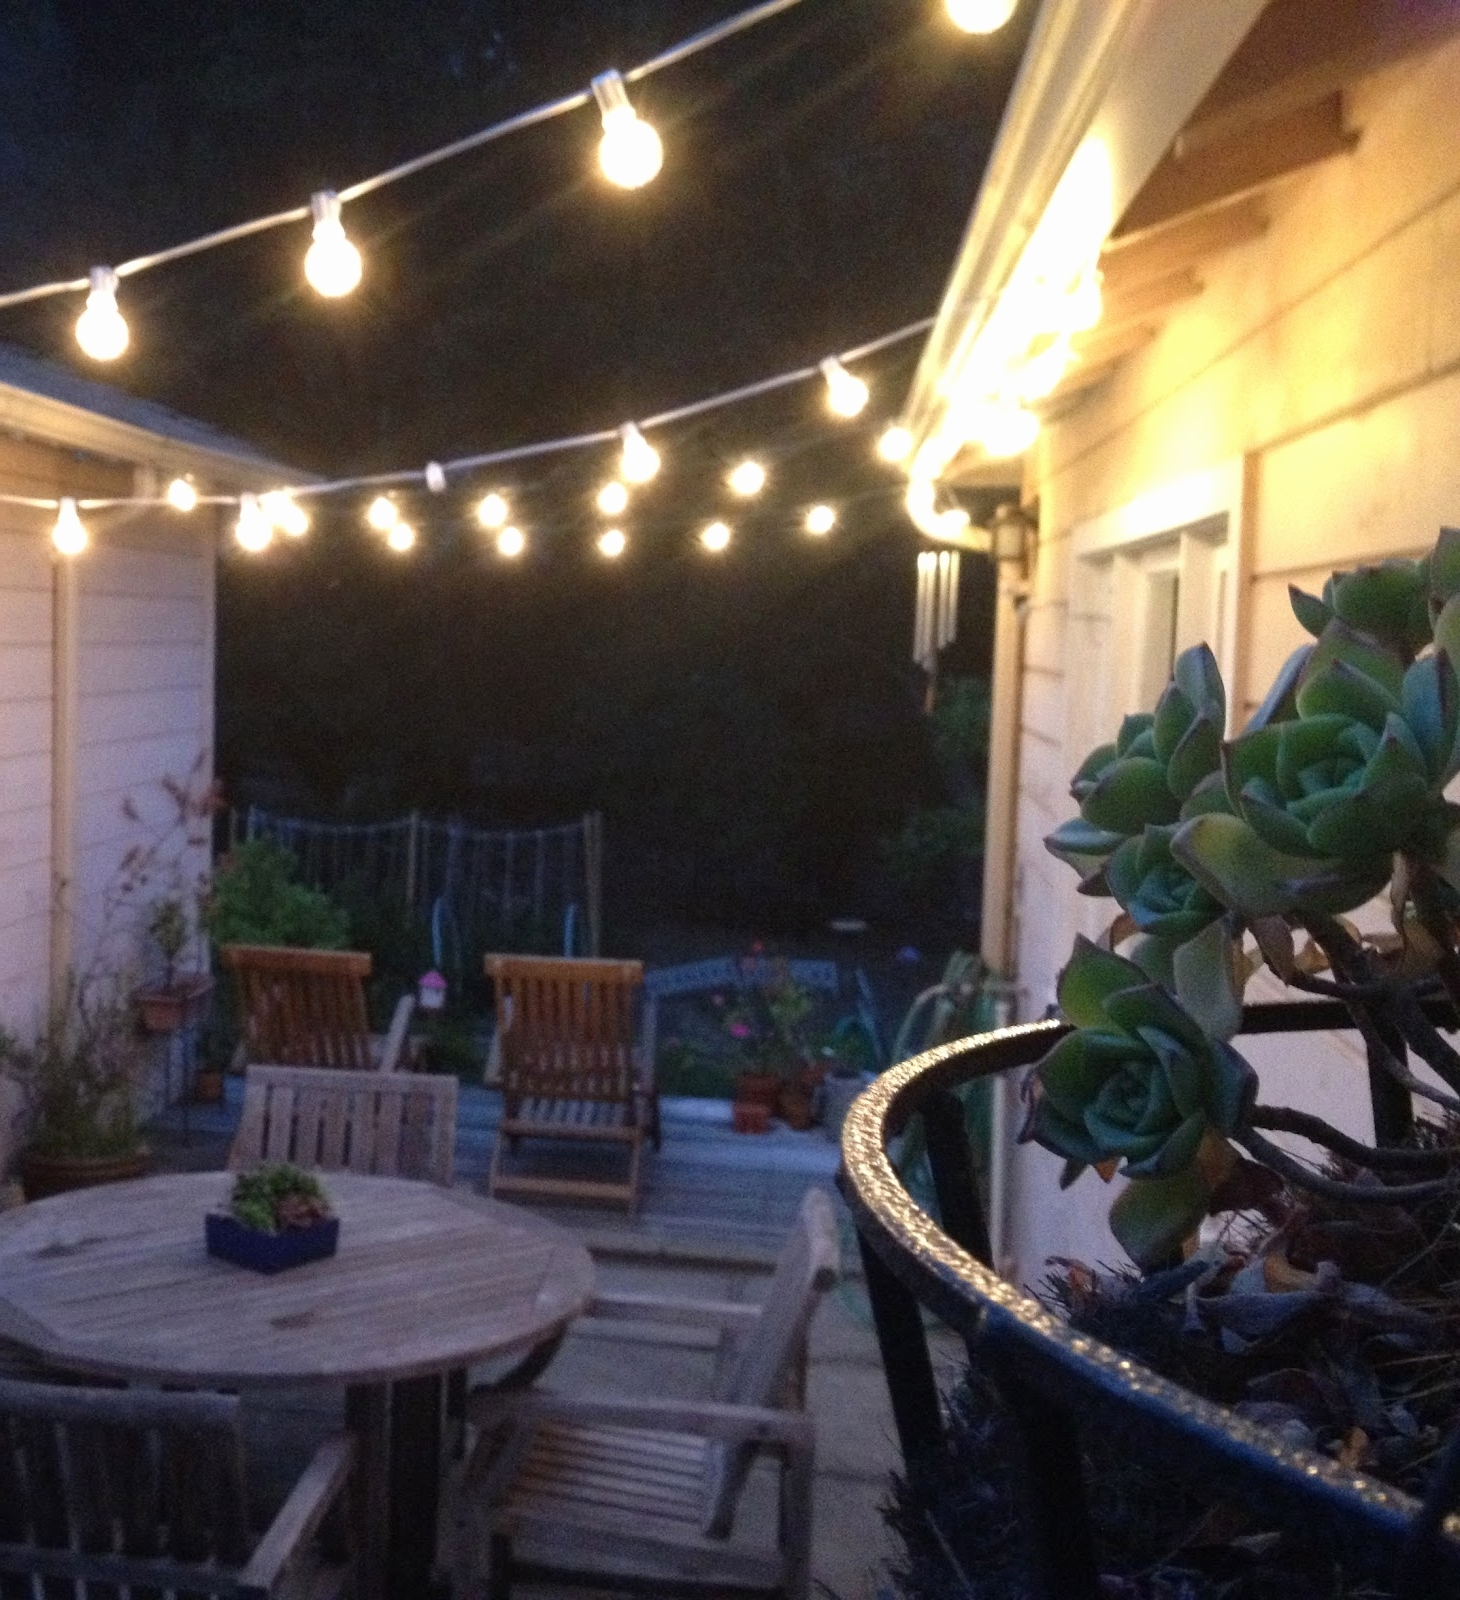 Well Known Garden String Lights Home Depot Awesome Amazon 25 Foot G50 Patio Intended For Hanging Outdoor String Lights At Home Depot (View 20 of 20)